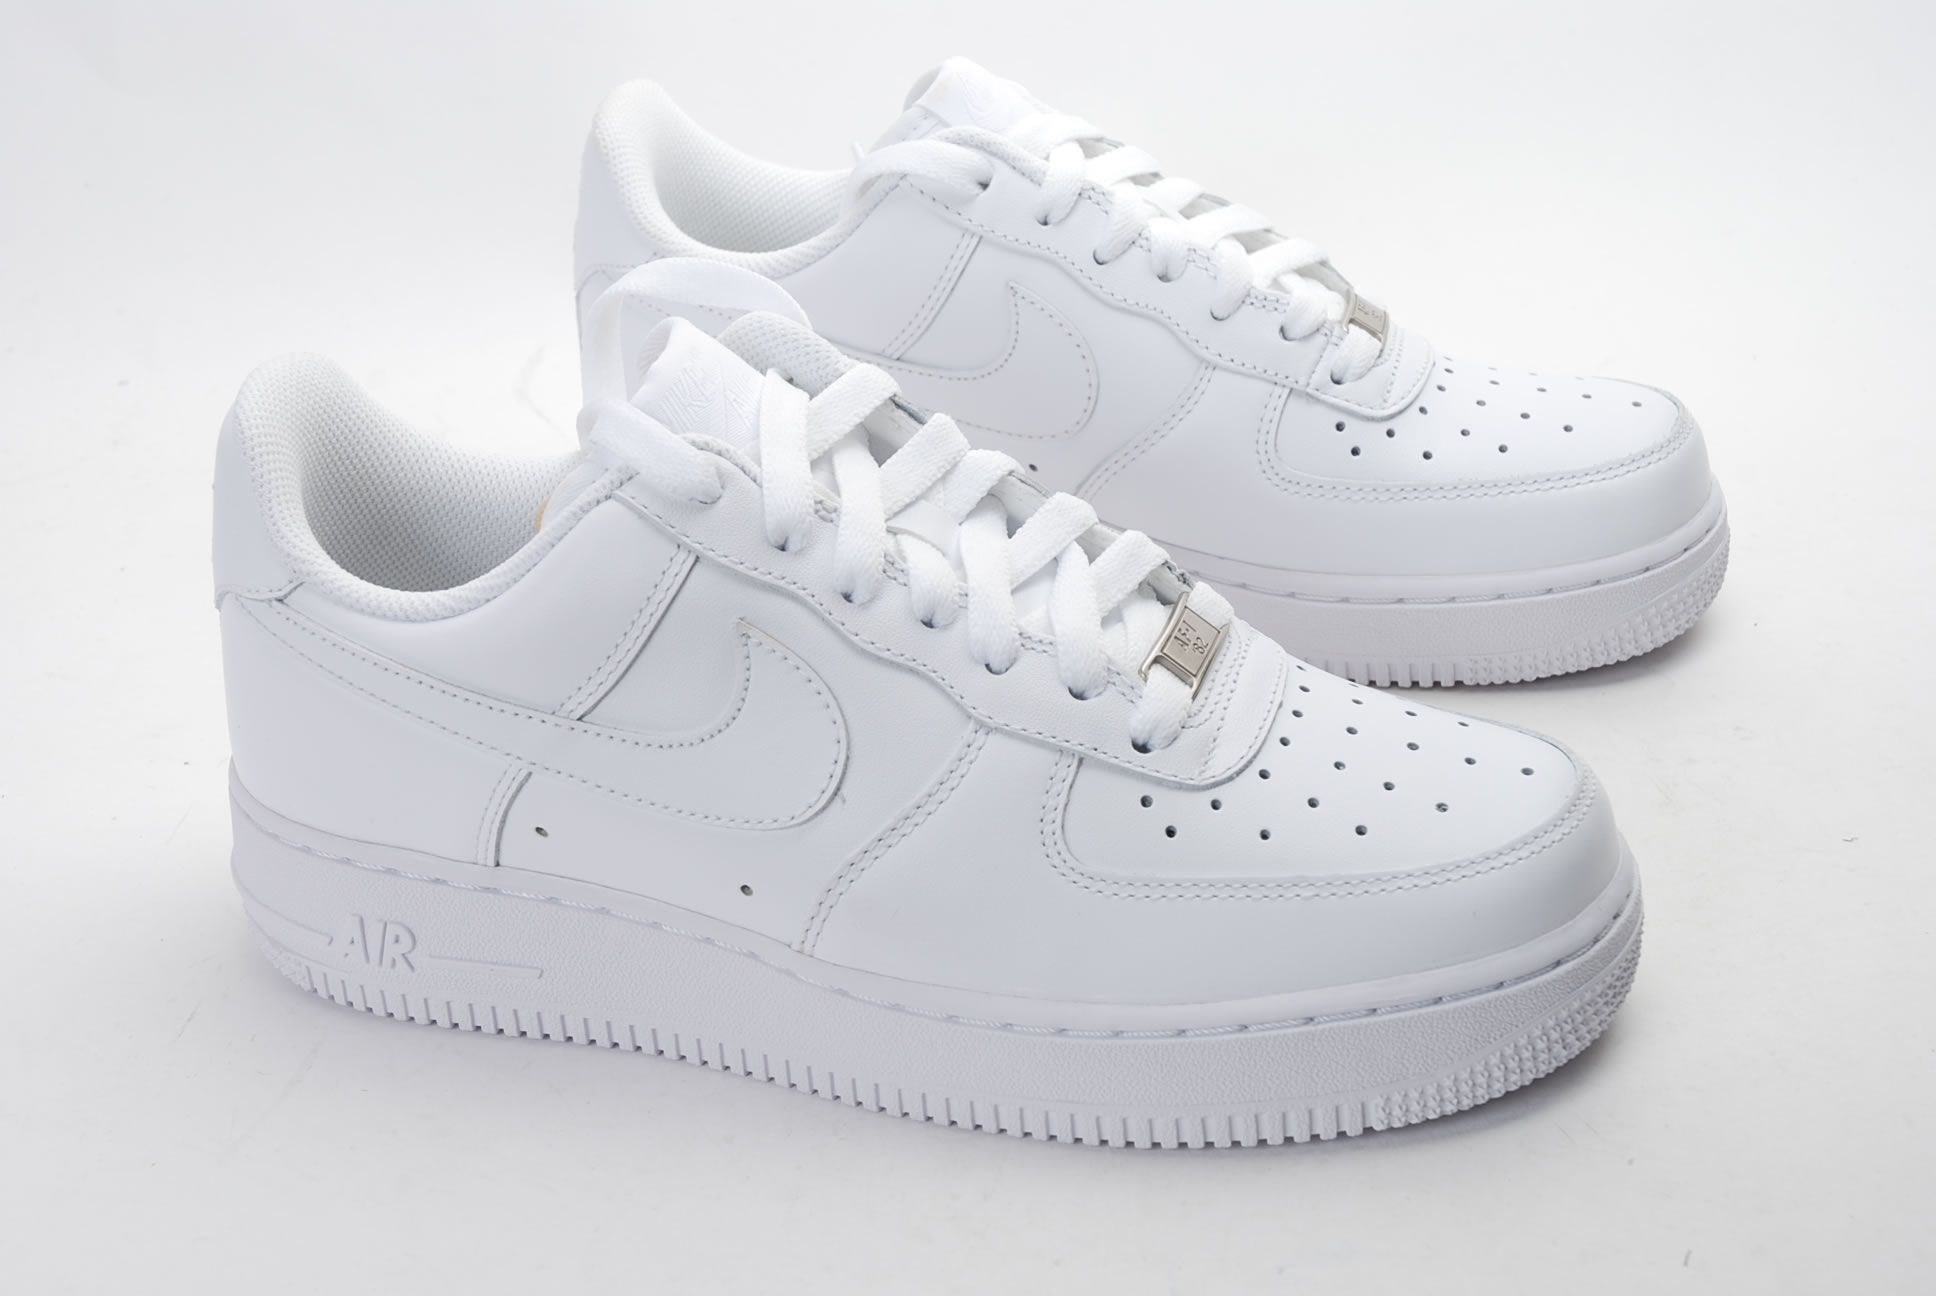 code promo e834c d7adc Air Force One White | Winter outfits | Chaussures de basket ...